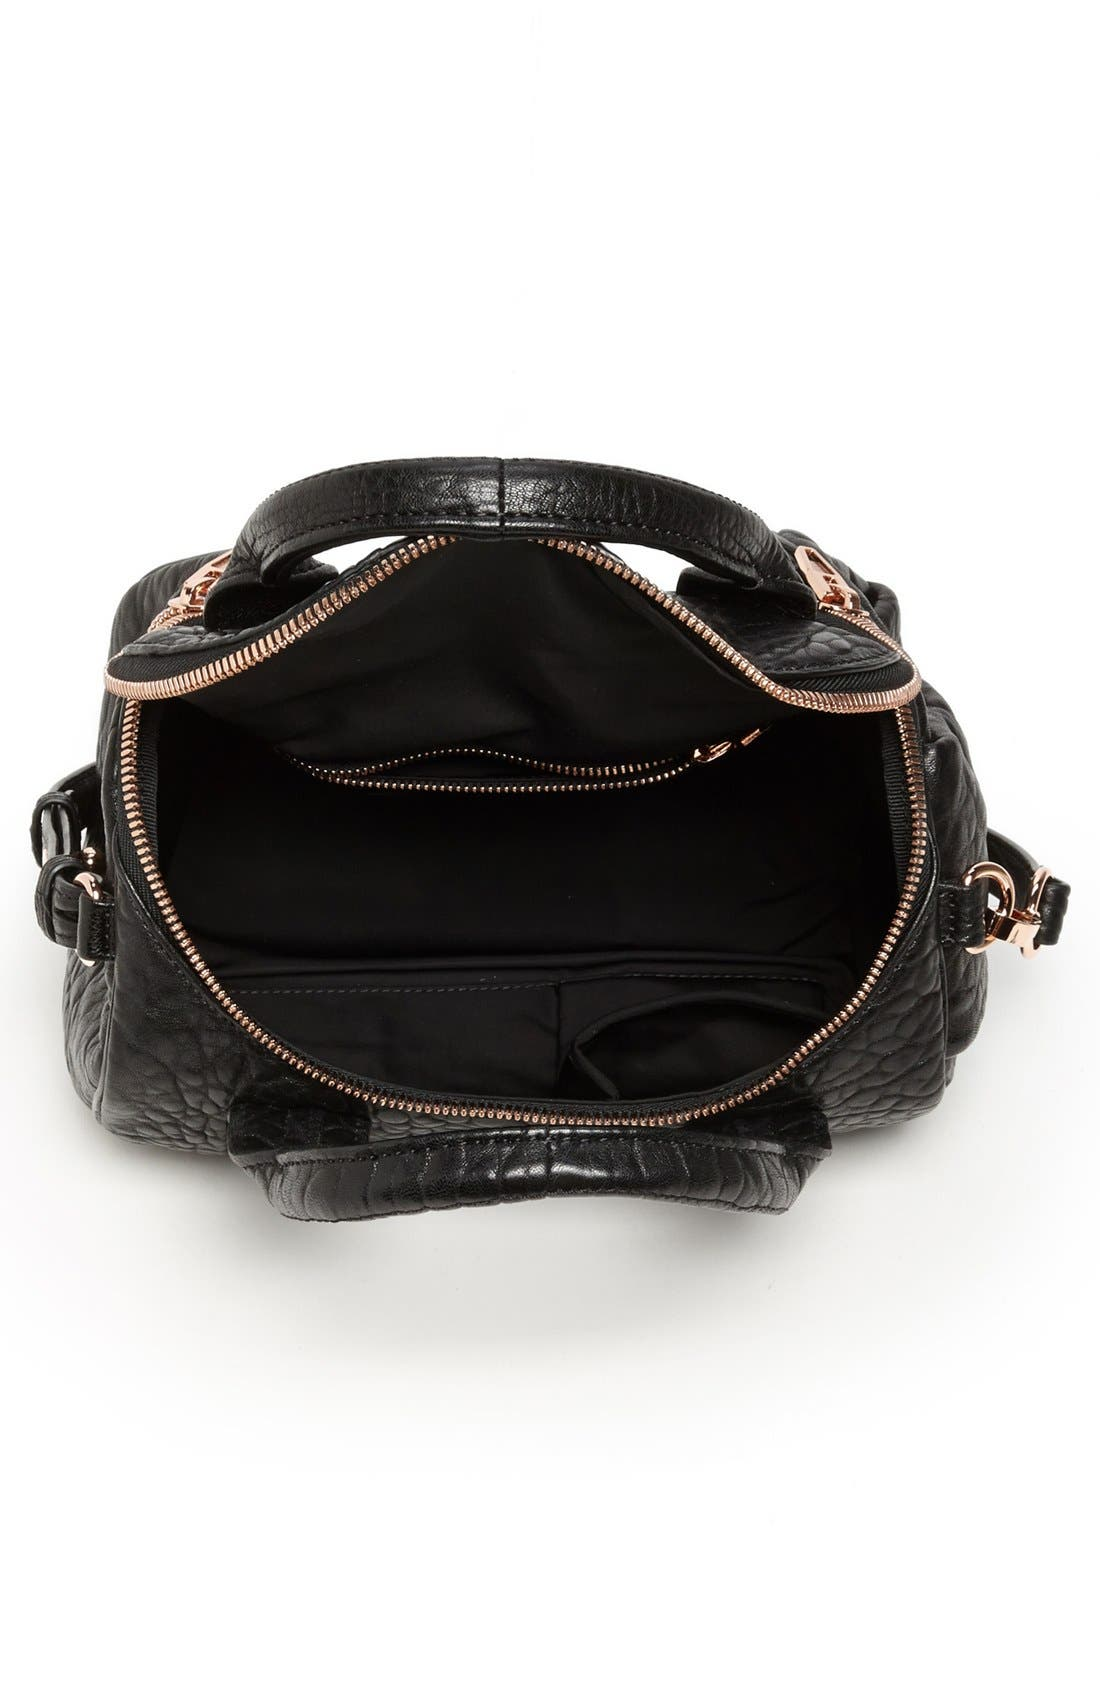 'Rockie - Rose Gold' Leather Crossbody Satchel,                             Alternate thumbnail 3, color,                             001